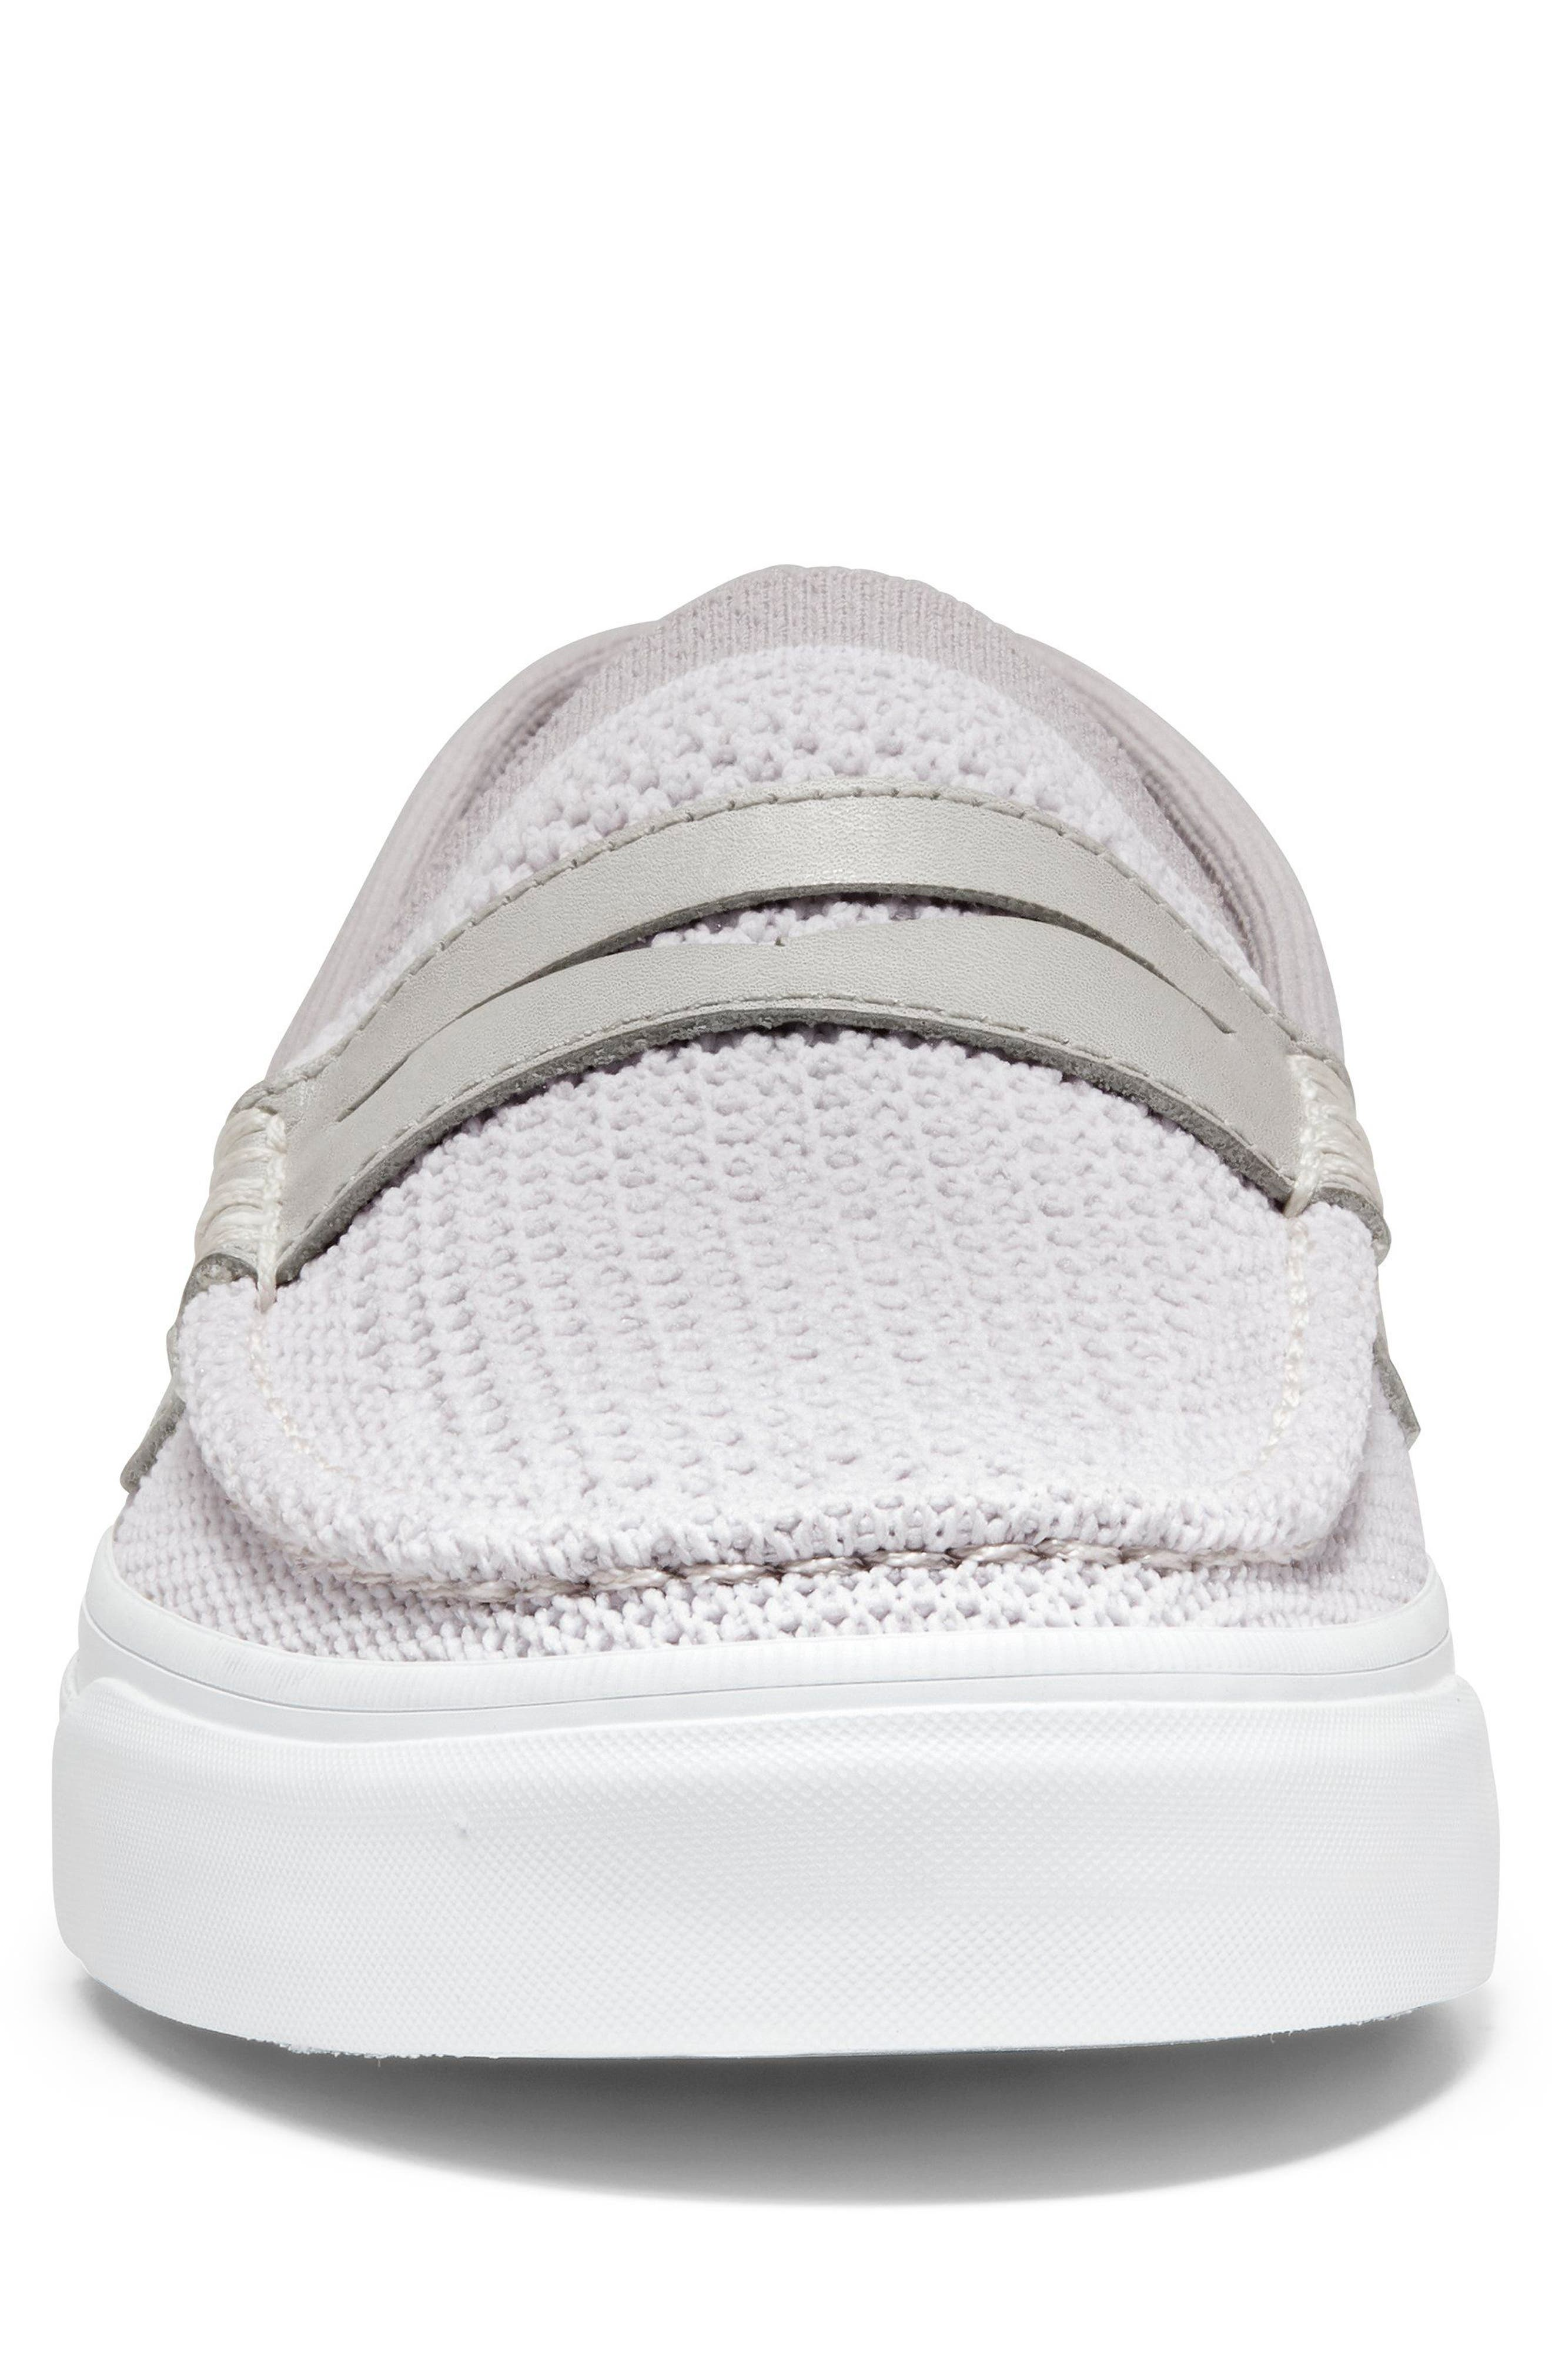 Pinch Stitch LX Stitchlite<sup>™</sup> Penny Loafer,                             Alternate thumbnail 4, color,                             VAPOR GREY /OPTIC WHITE